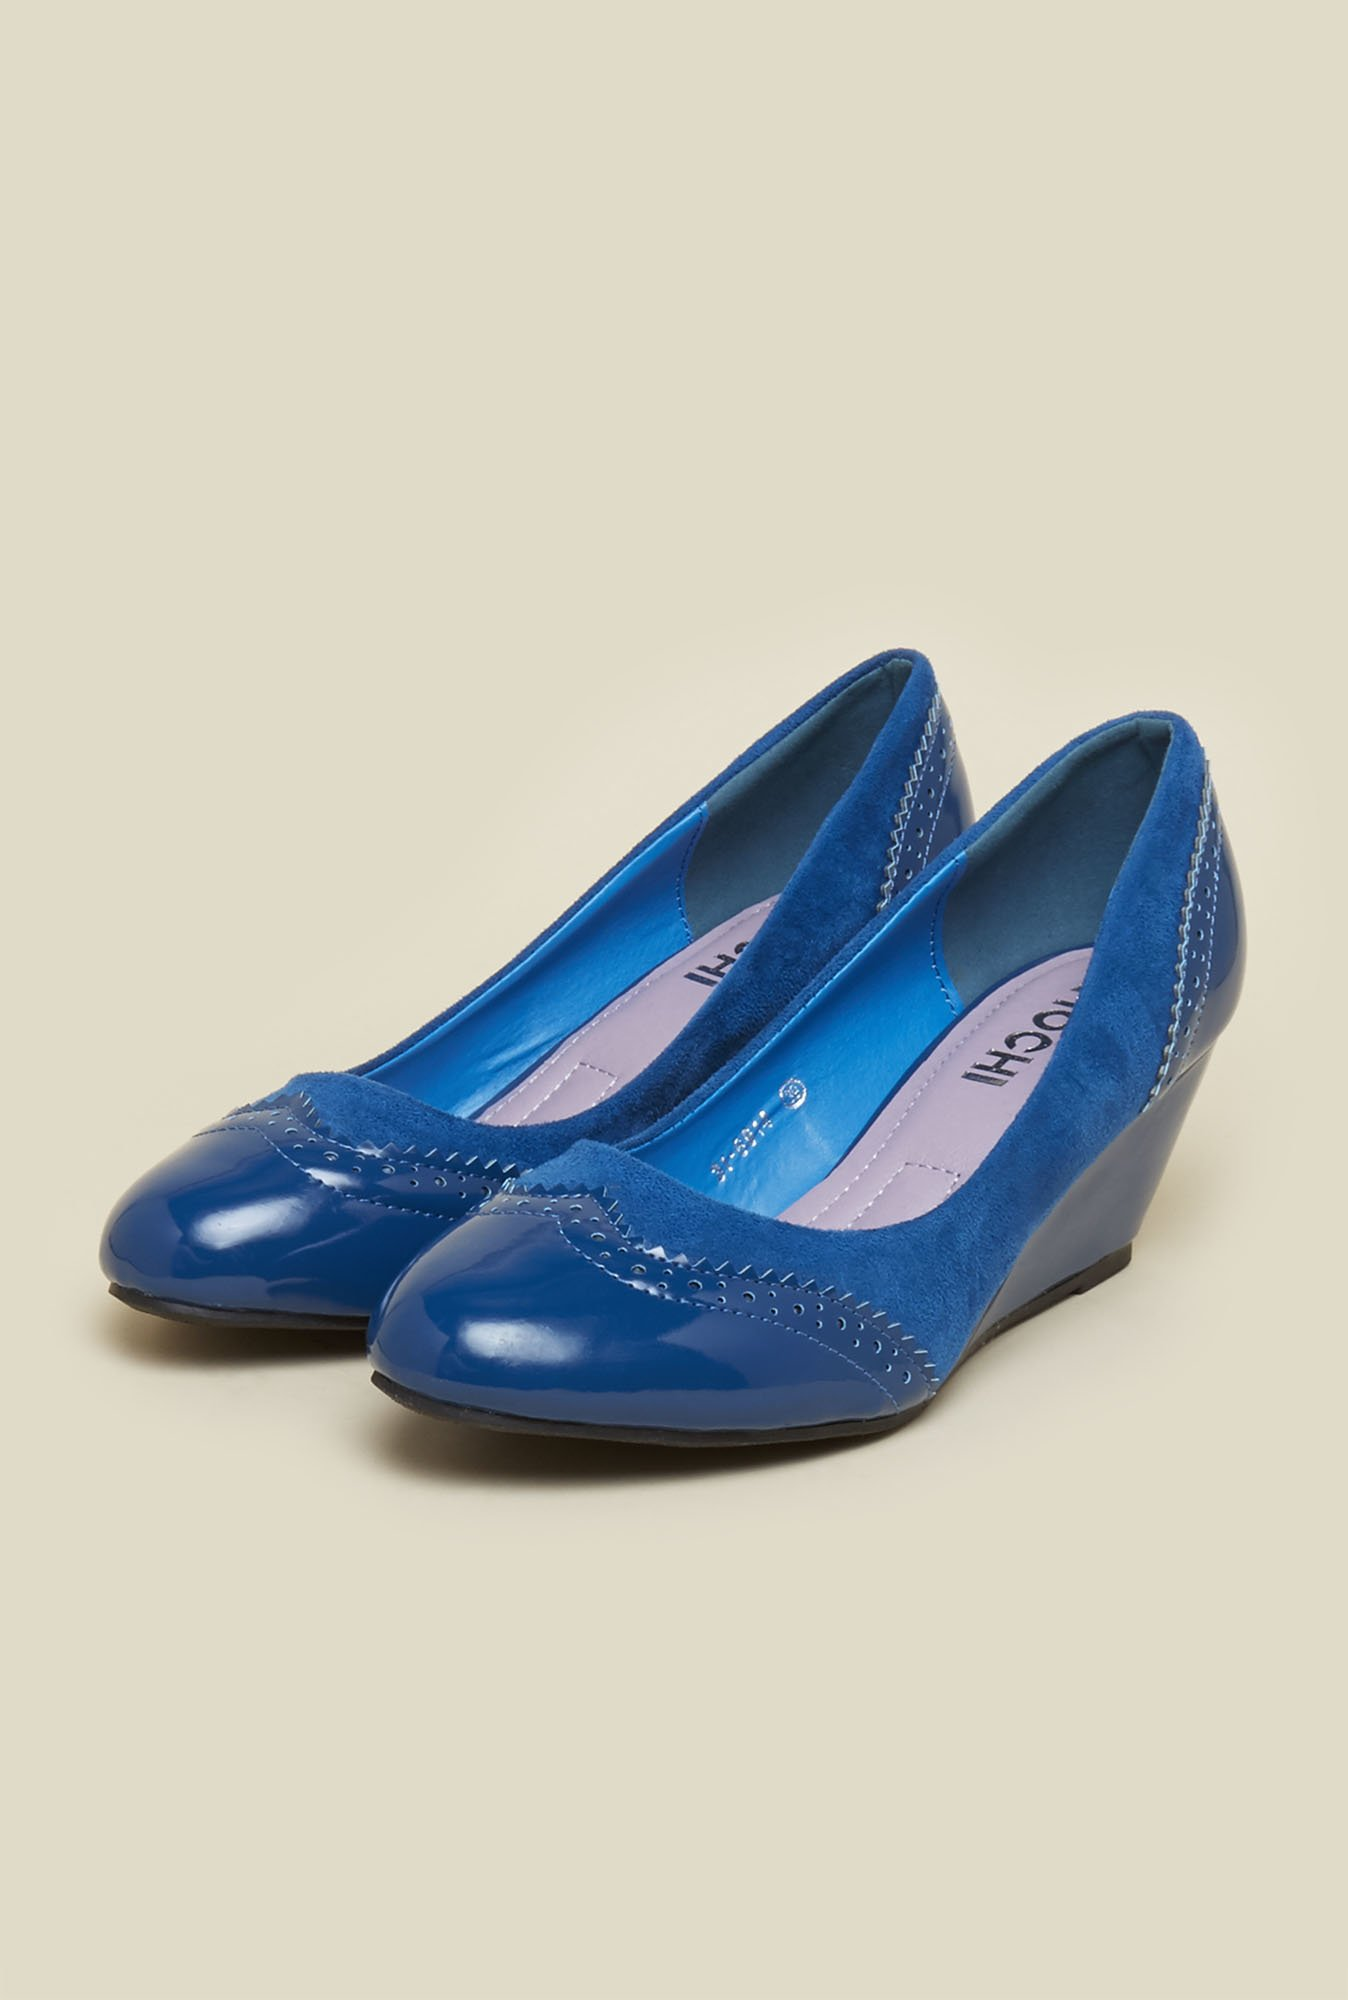 Mochi Blue Wedge Heel Shoes